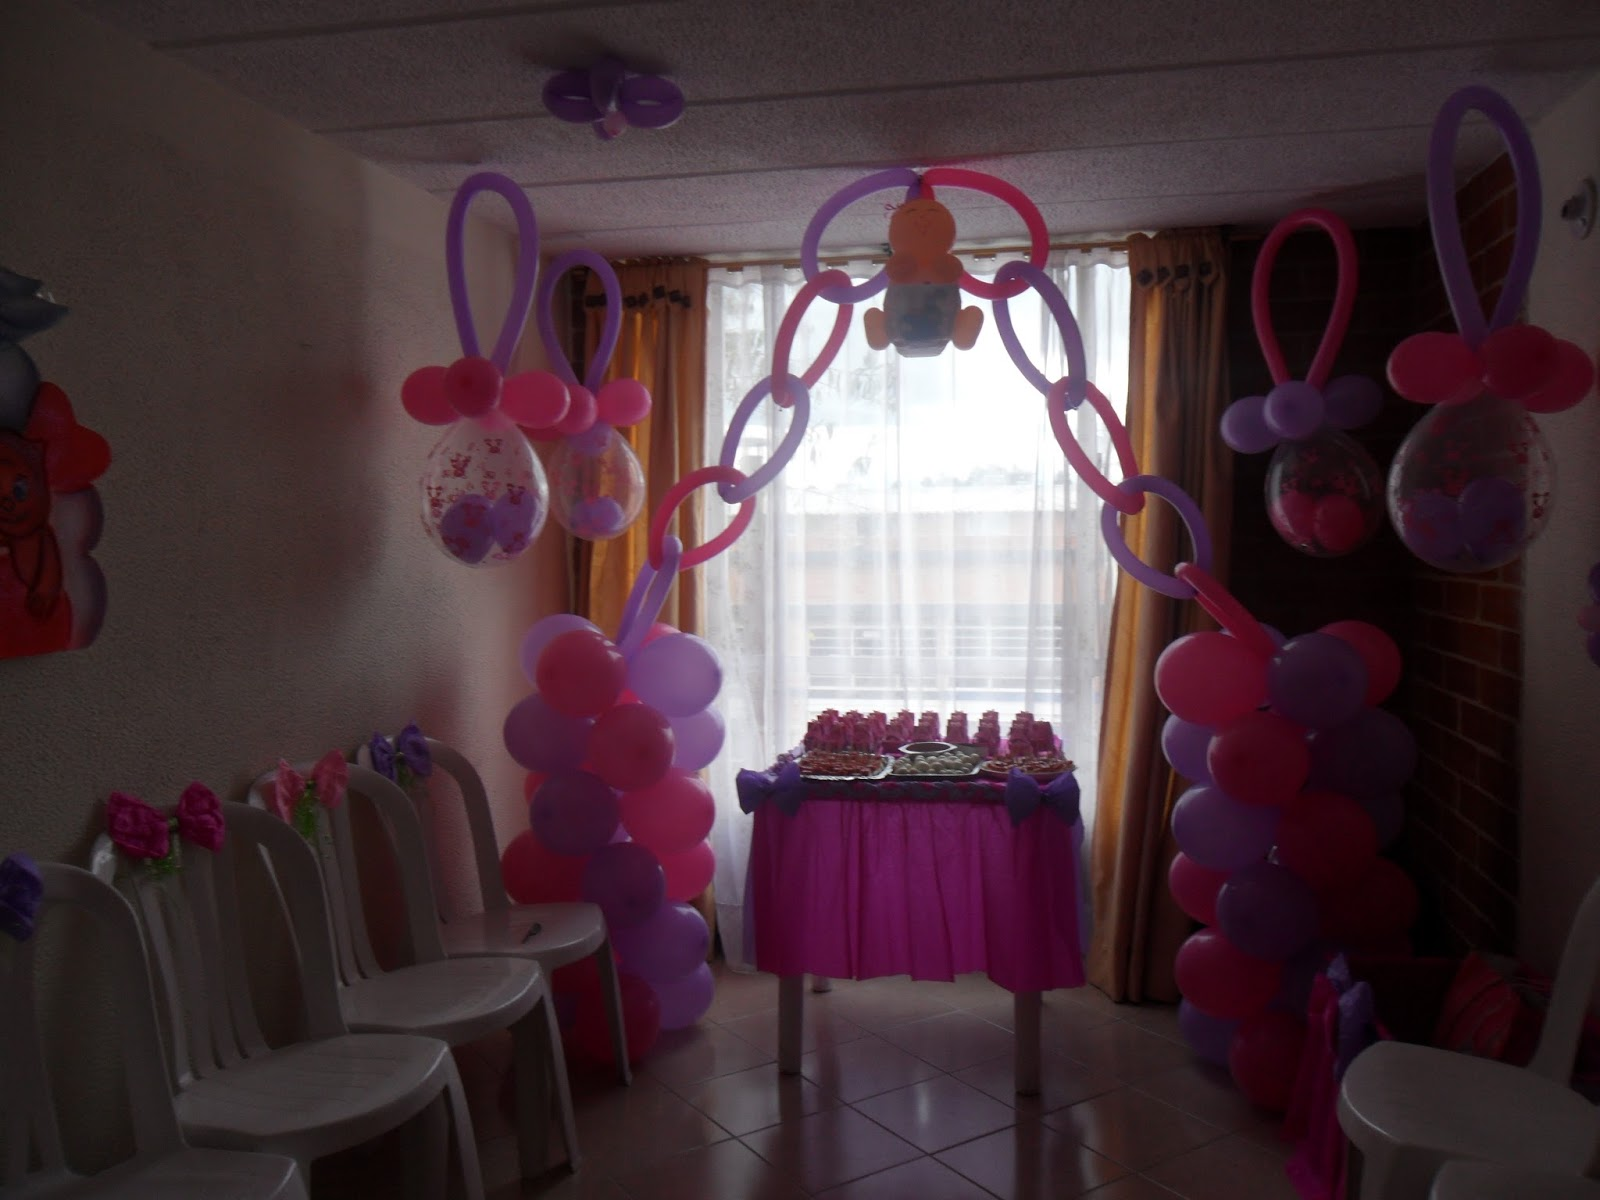 Decoraciones con globos para baby shower y fiestas infantiles for Decoracion baby shower nina